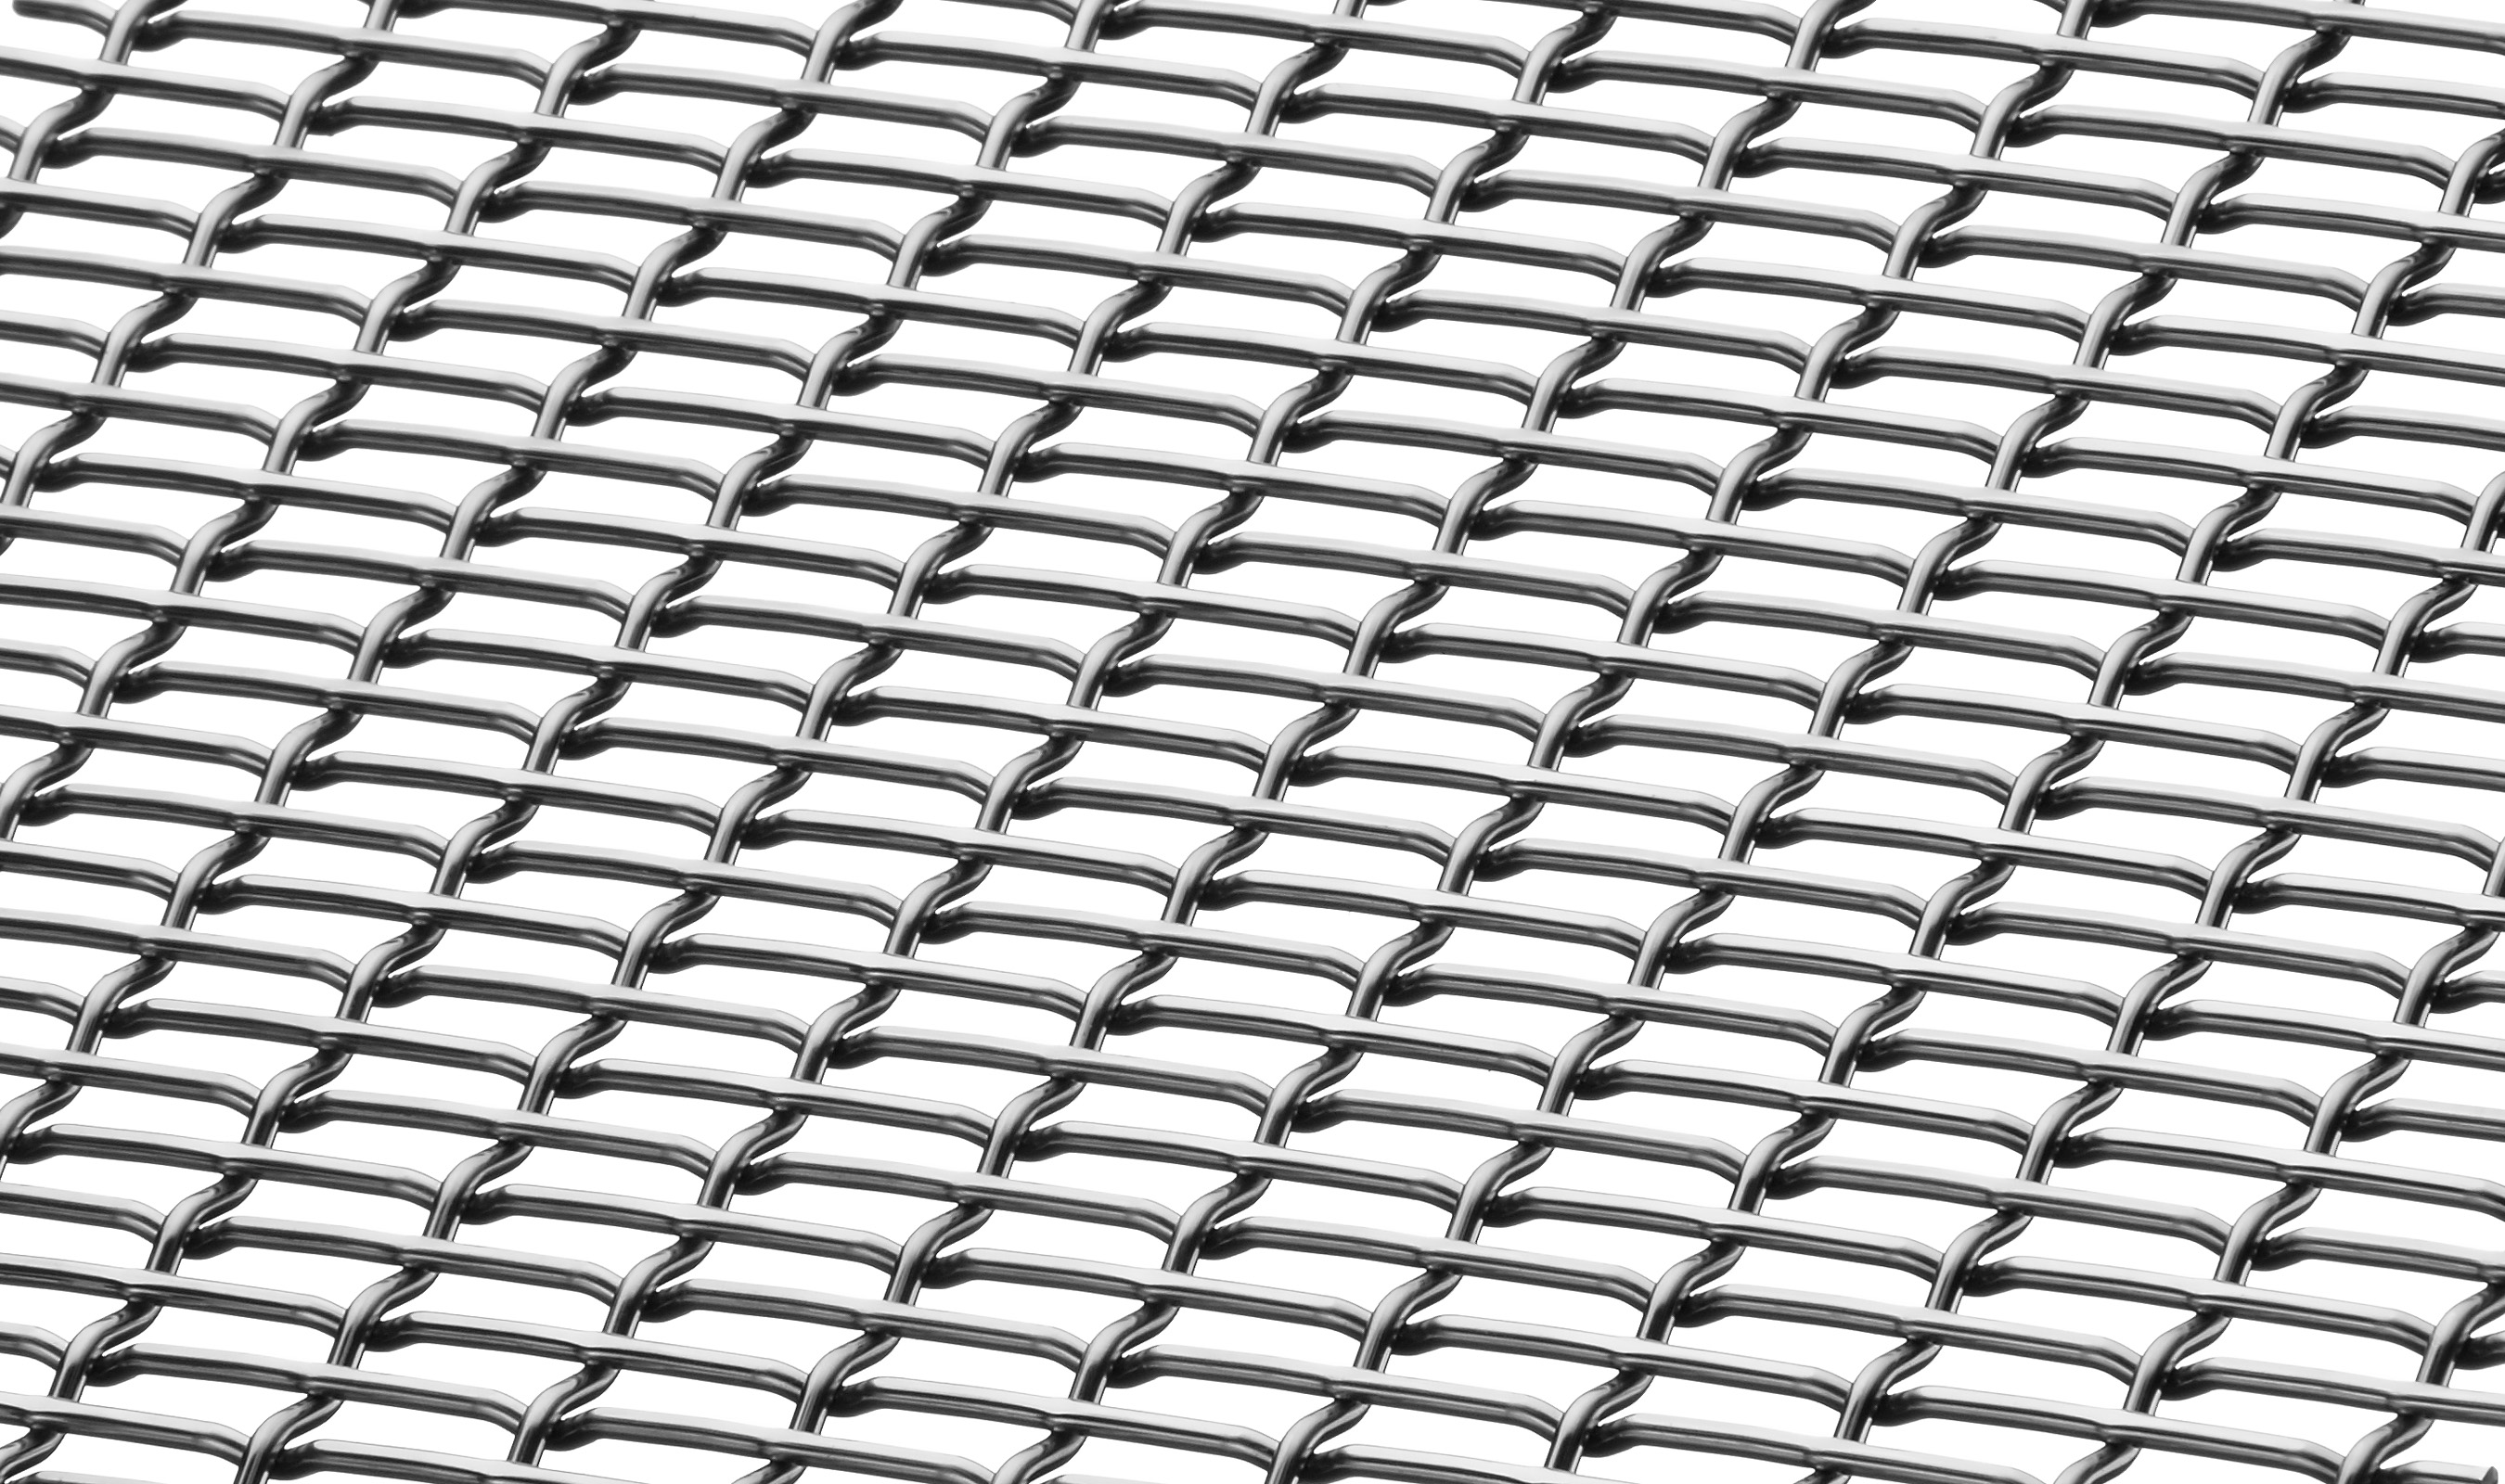 FPZ-10 architectural rectangular wire mesh pattern in stainless steel